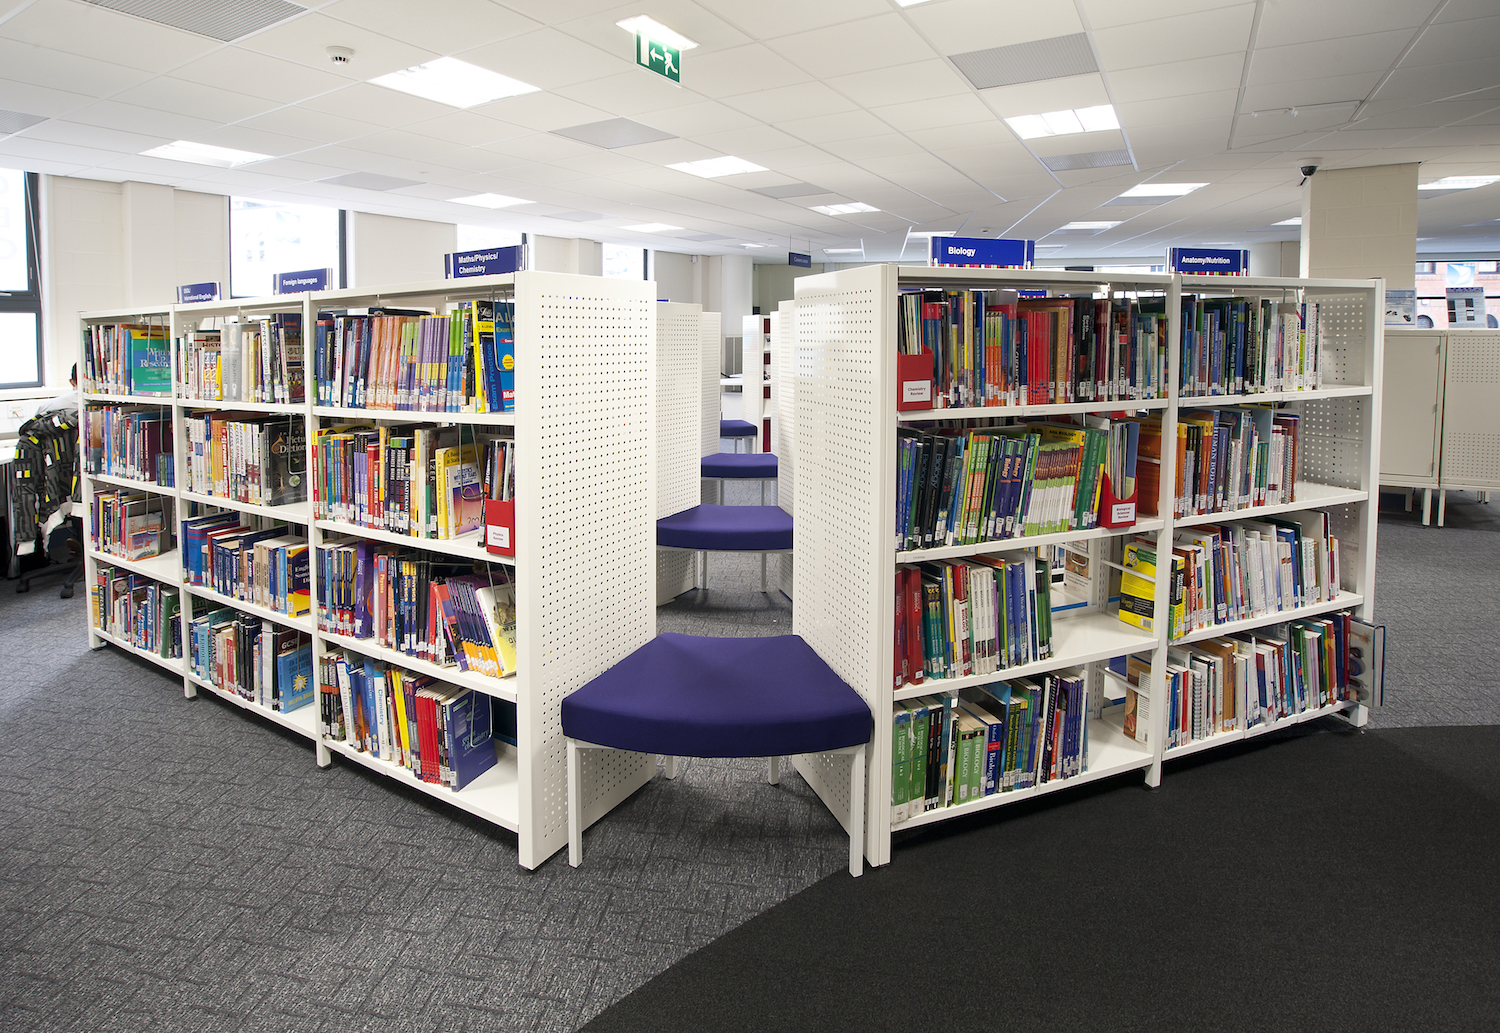 White Aspire shelving separated by seating pads creating alternative display options